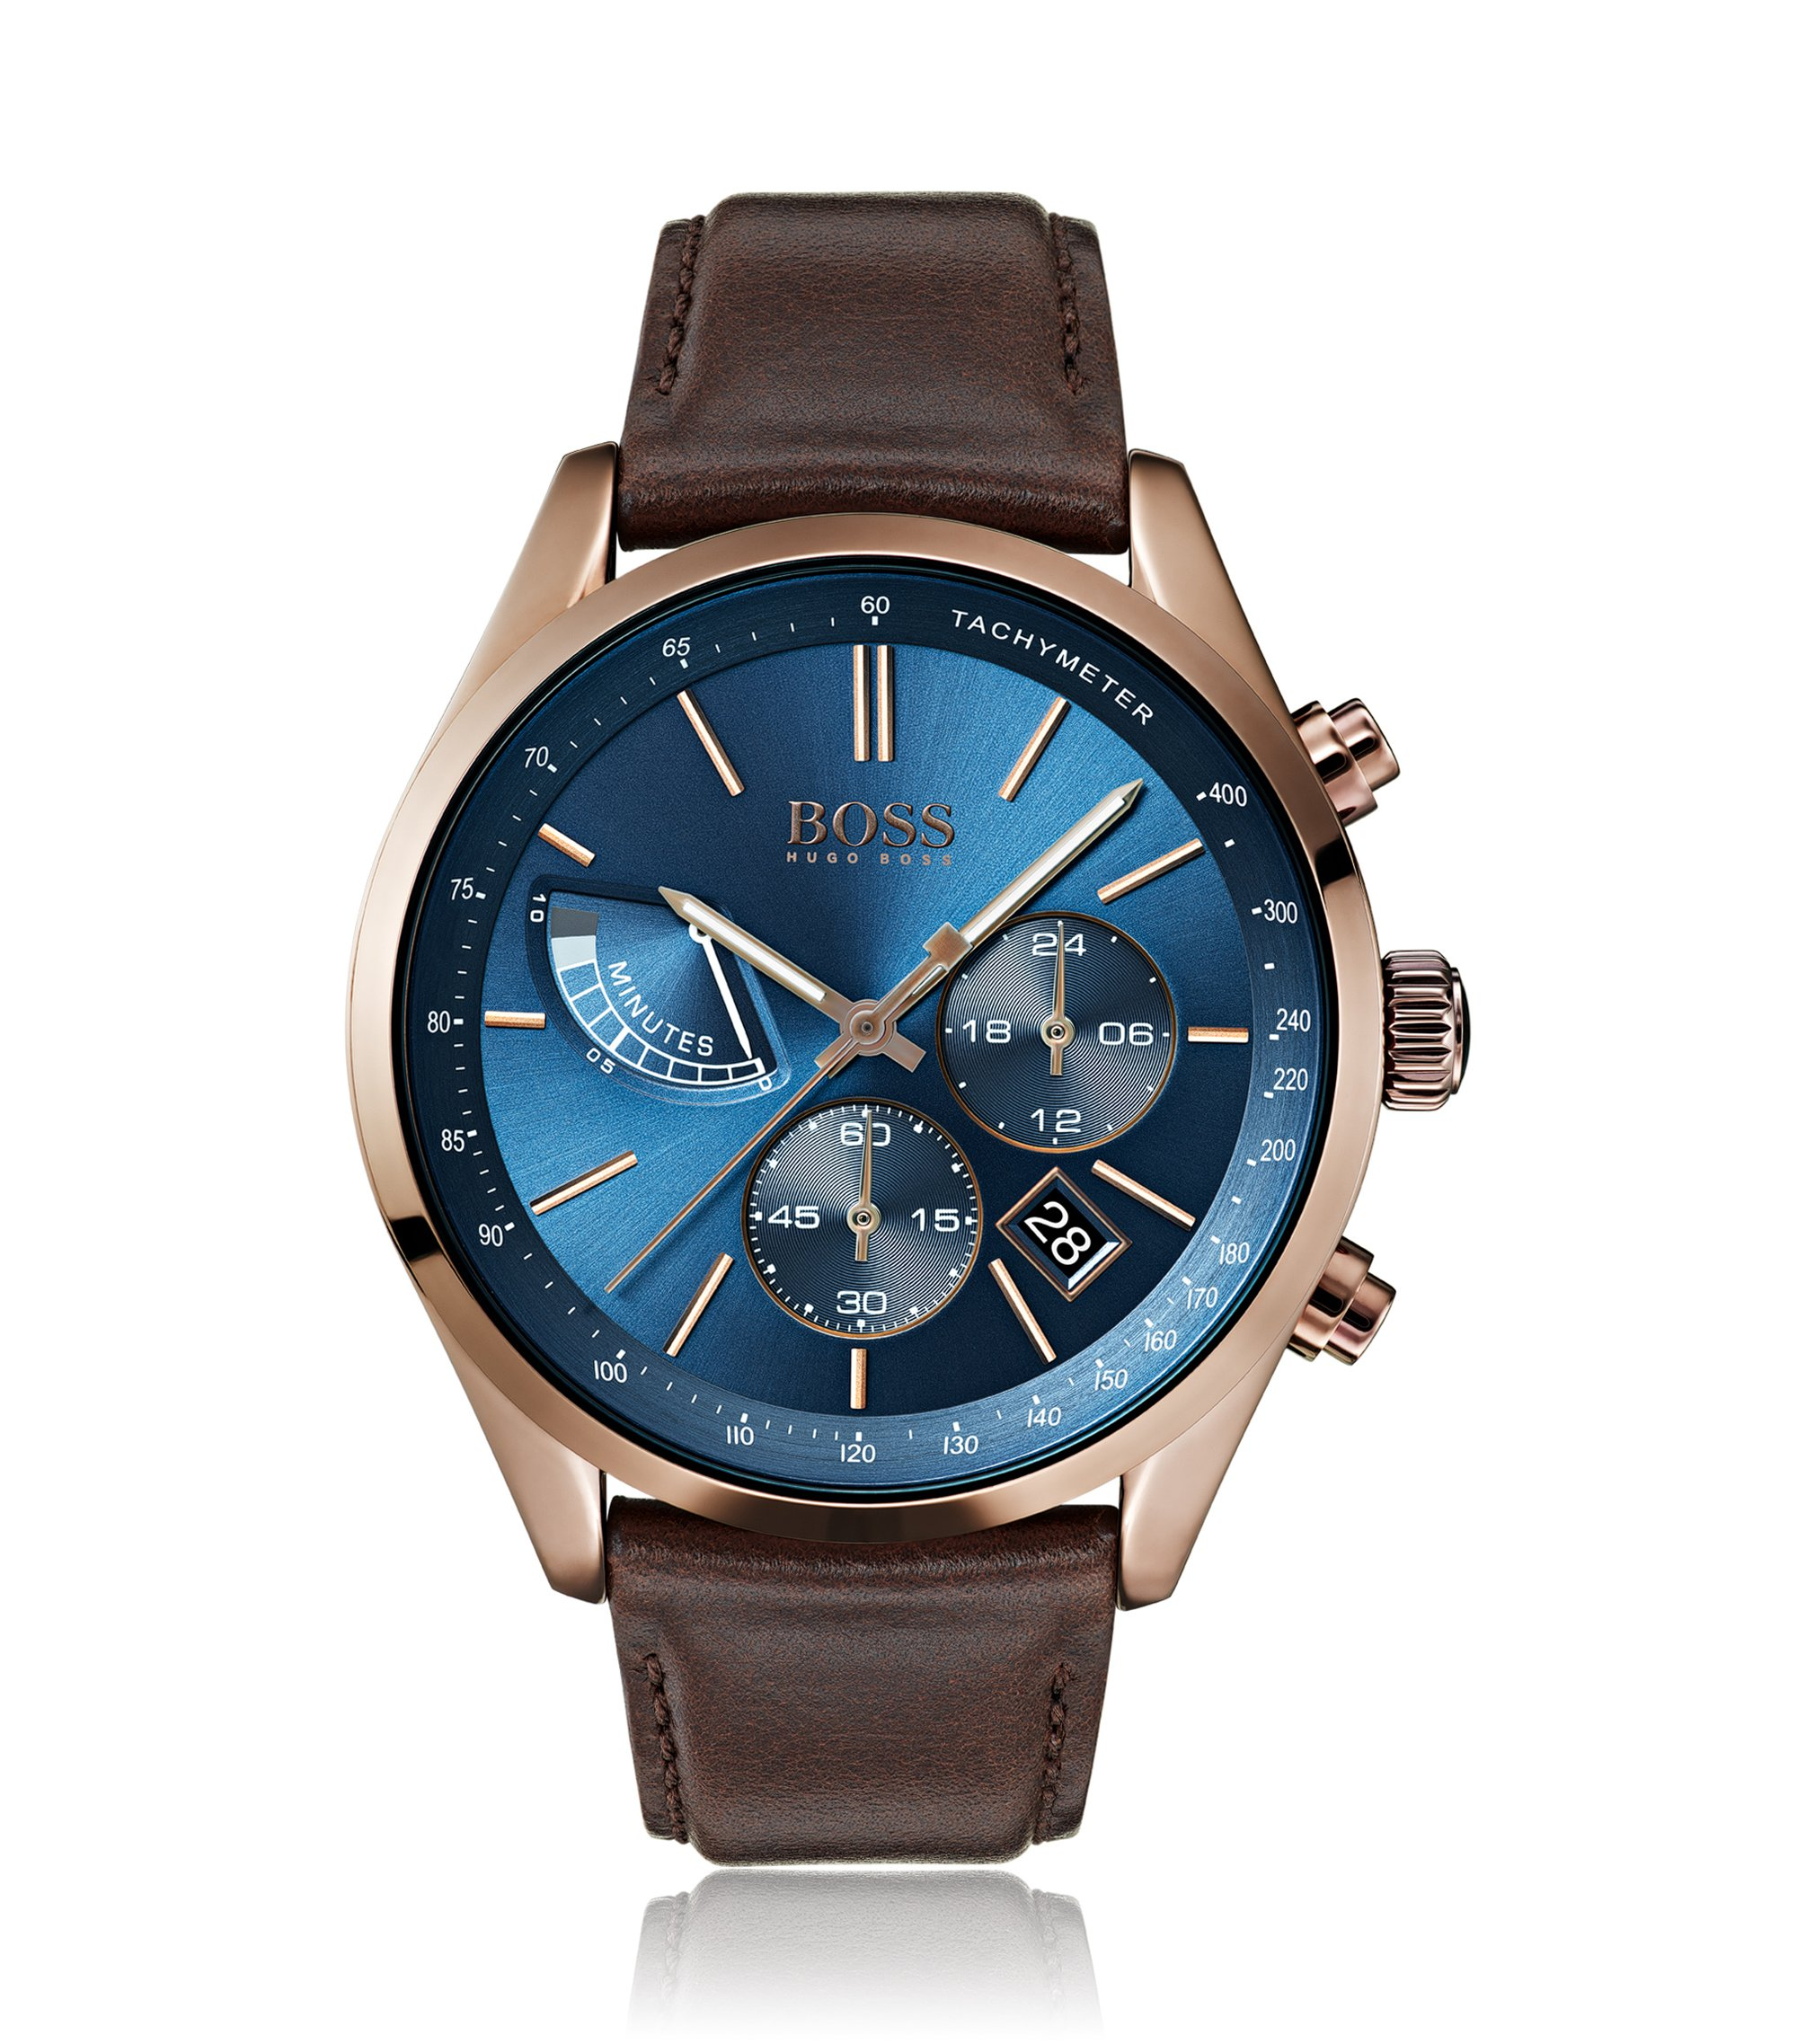 Driver's style chronograph watch with blue sunray-brushed dial, Dark Brown